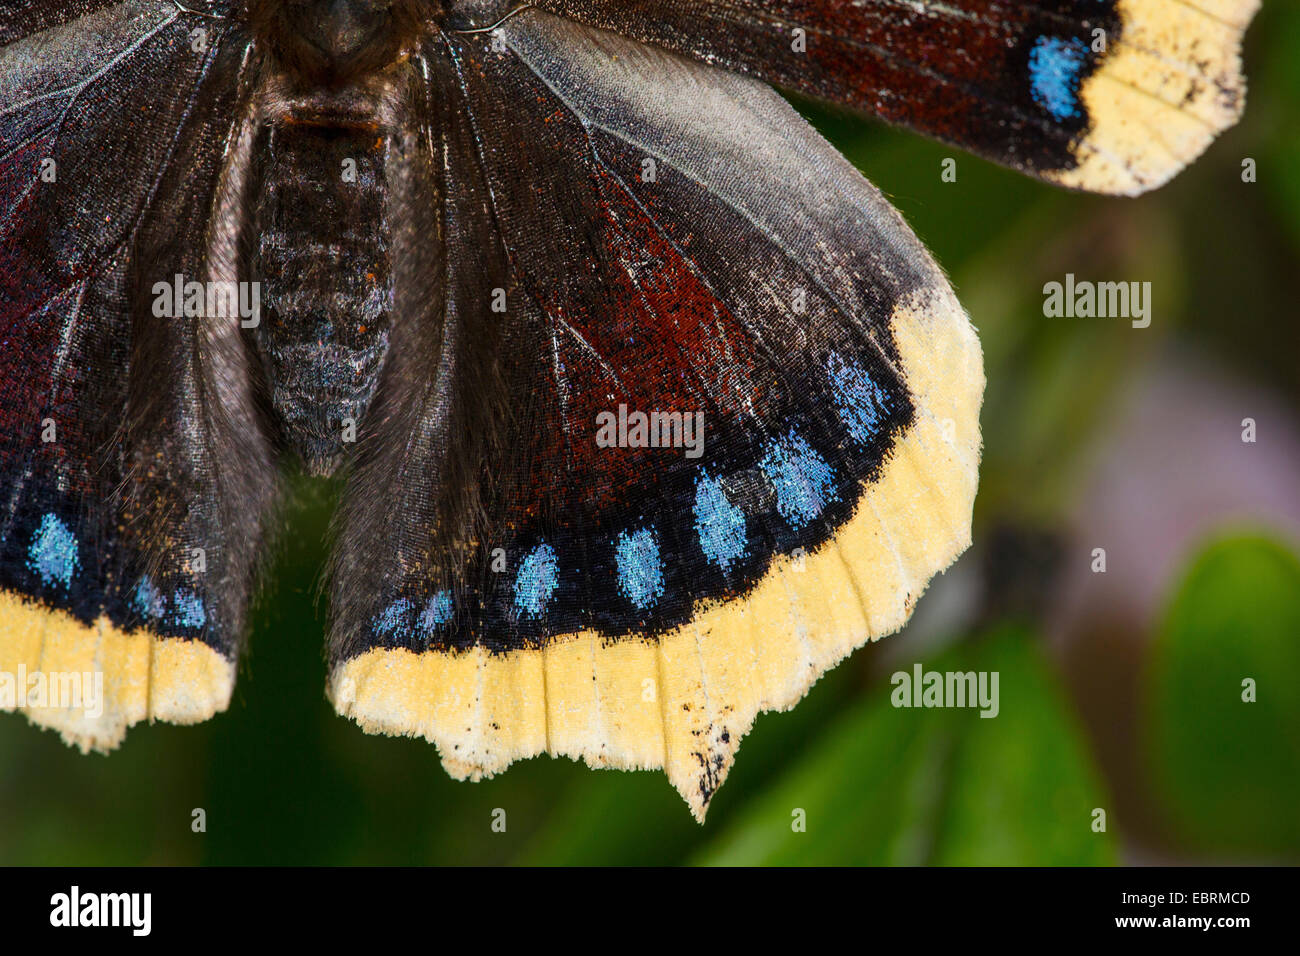 Camberwell beauty (Nymphalis antiopa), detail of a wing, Germany - Stock Image